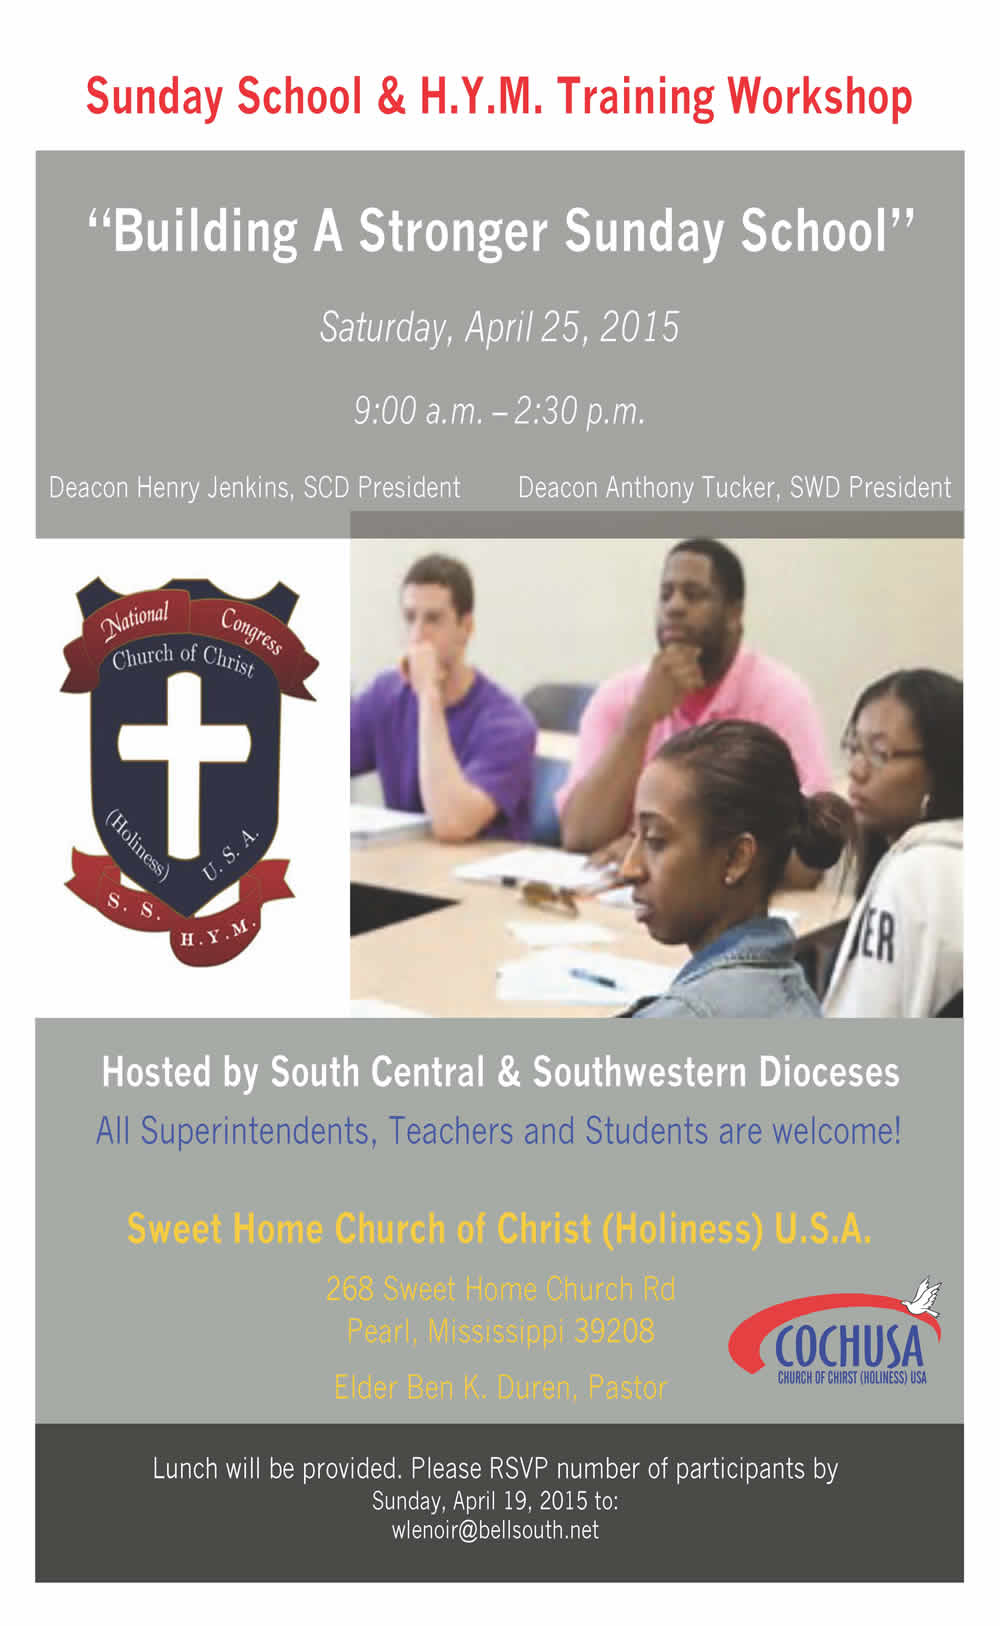 SC_SW_Dioceses_Flyer